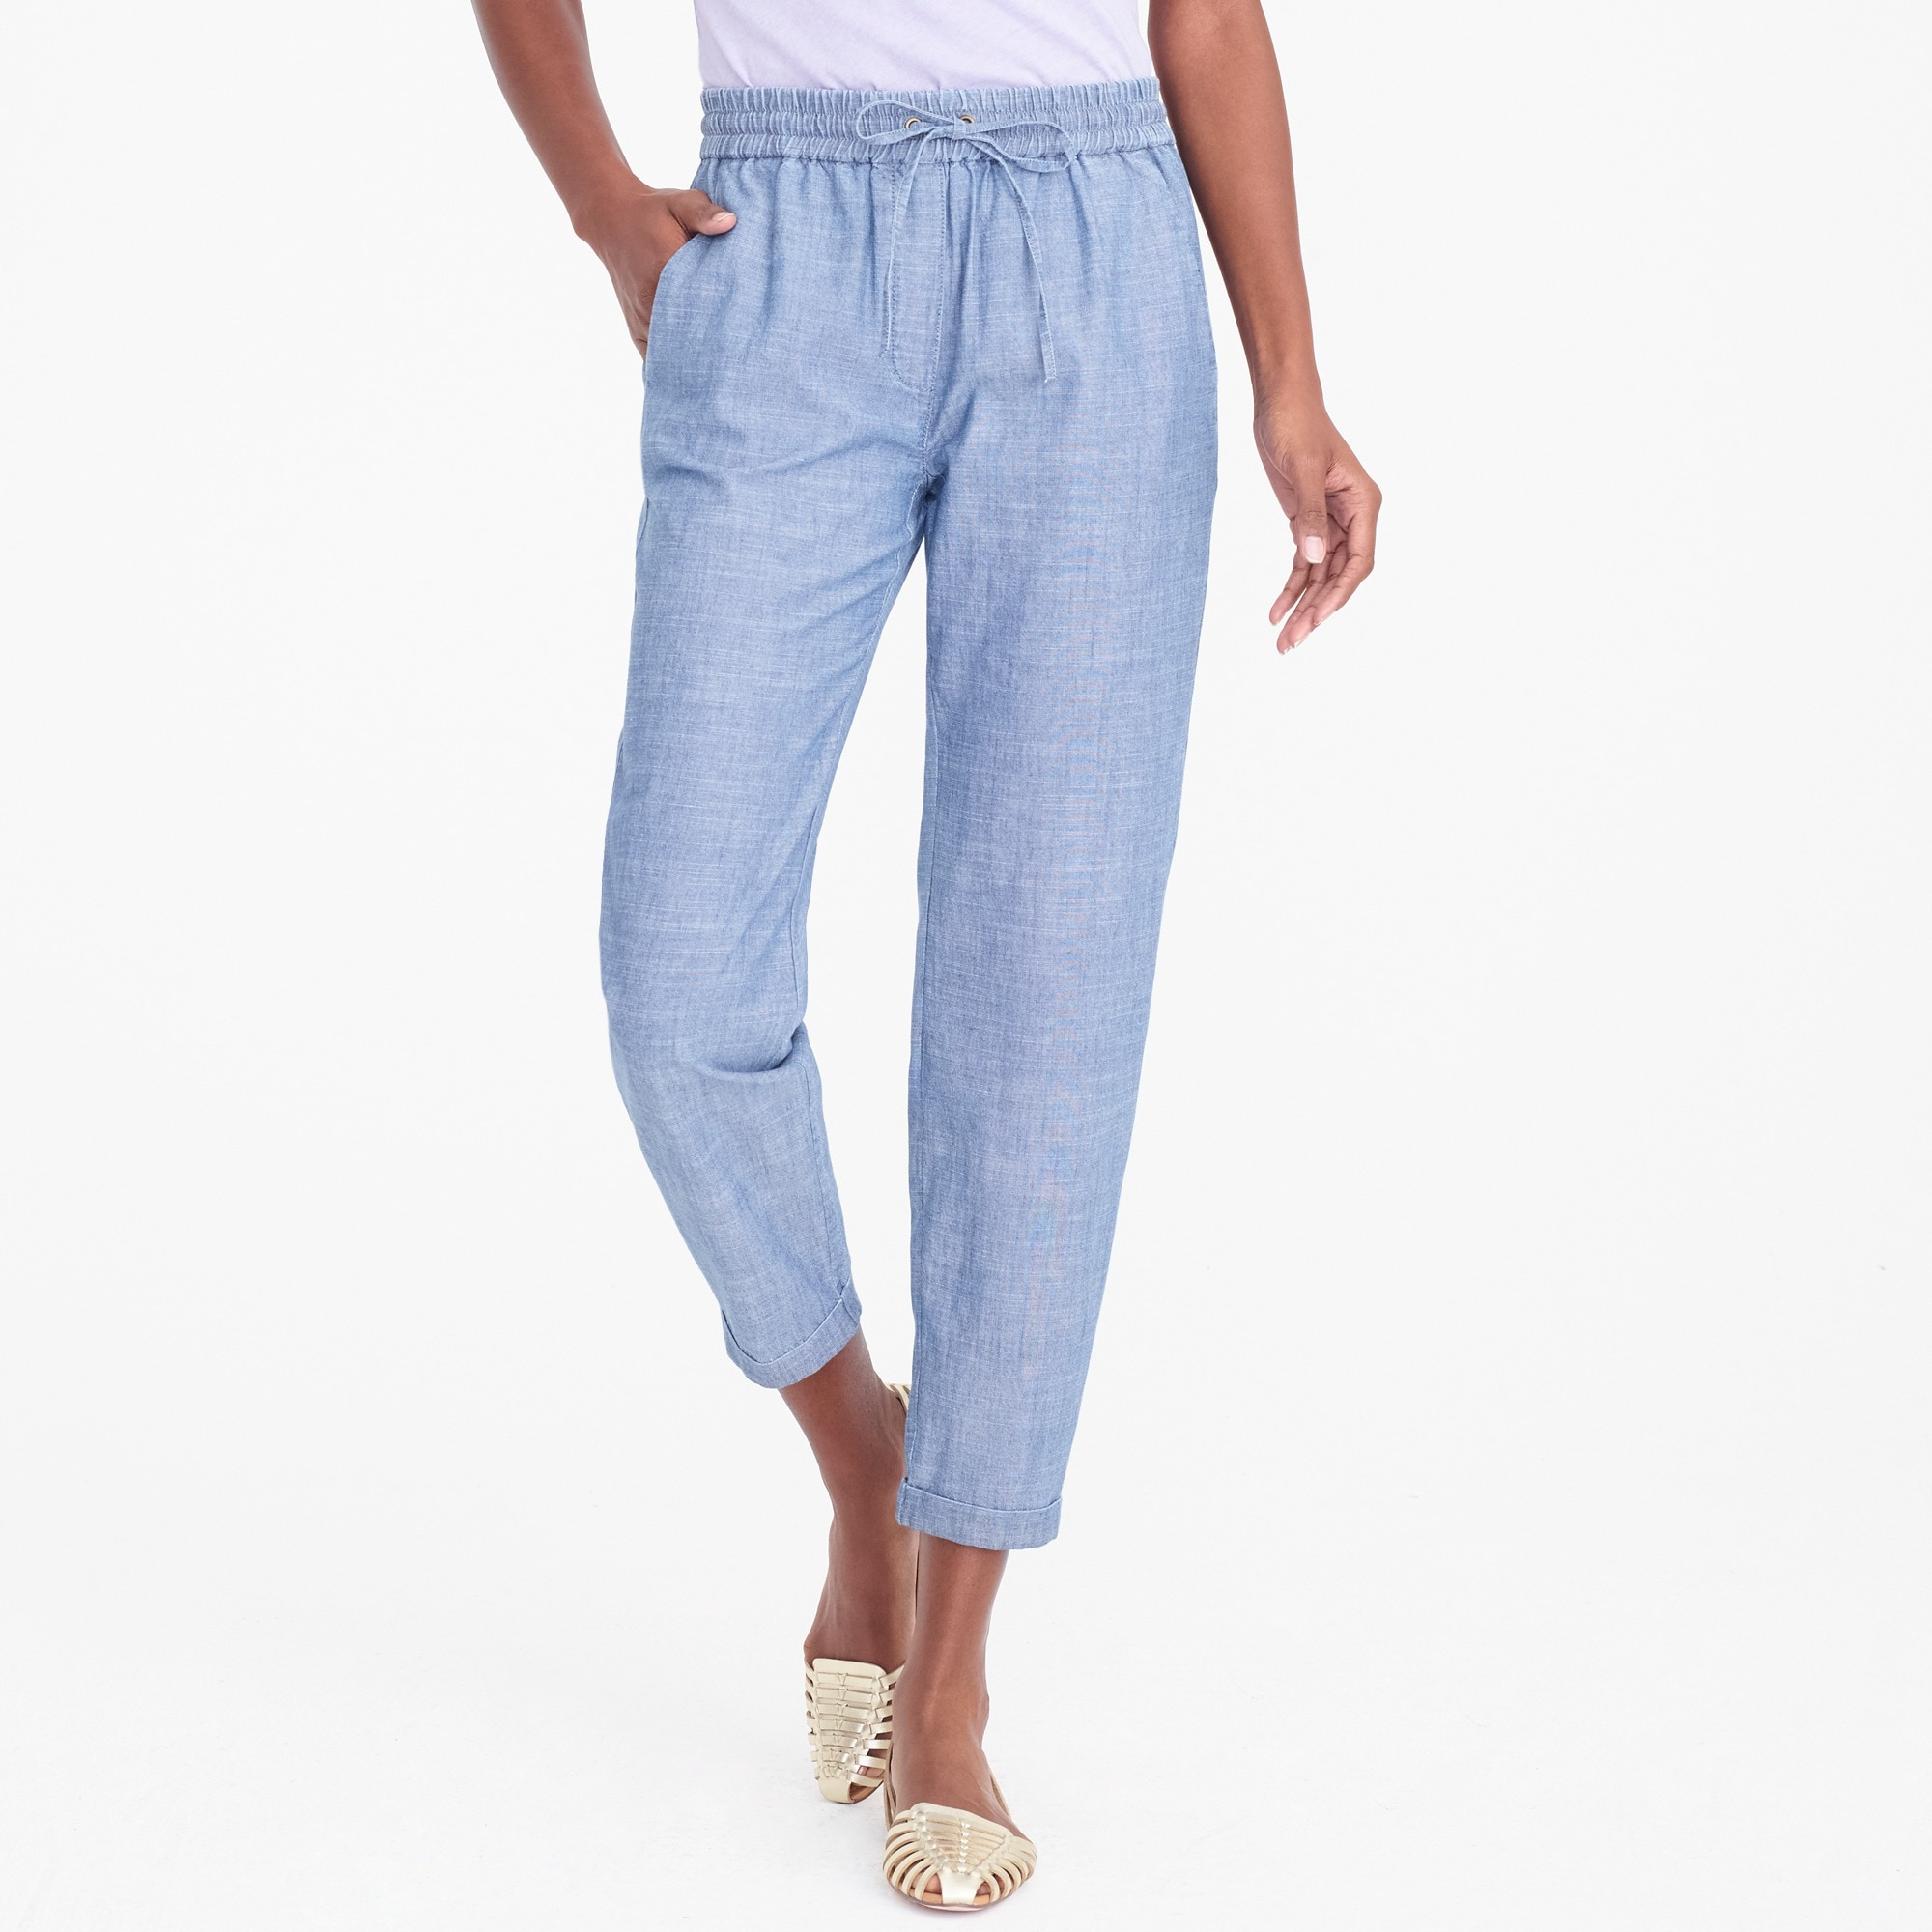 Image 1 for Petite chambray drawstring pant